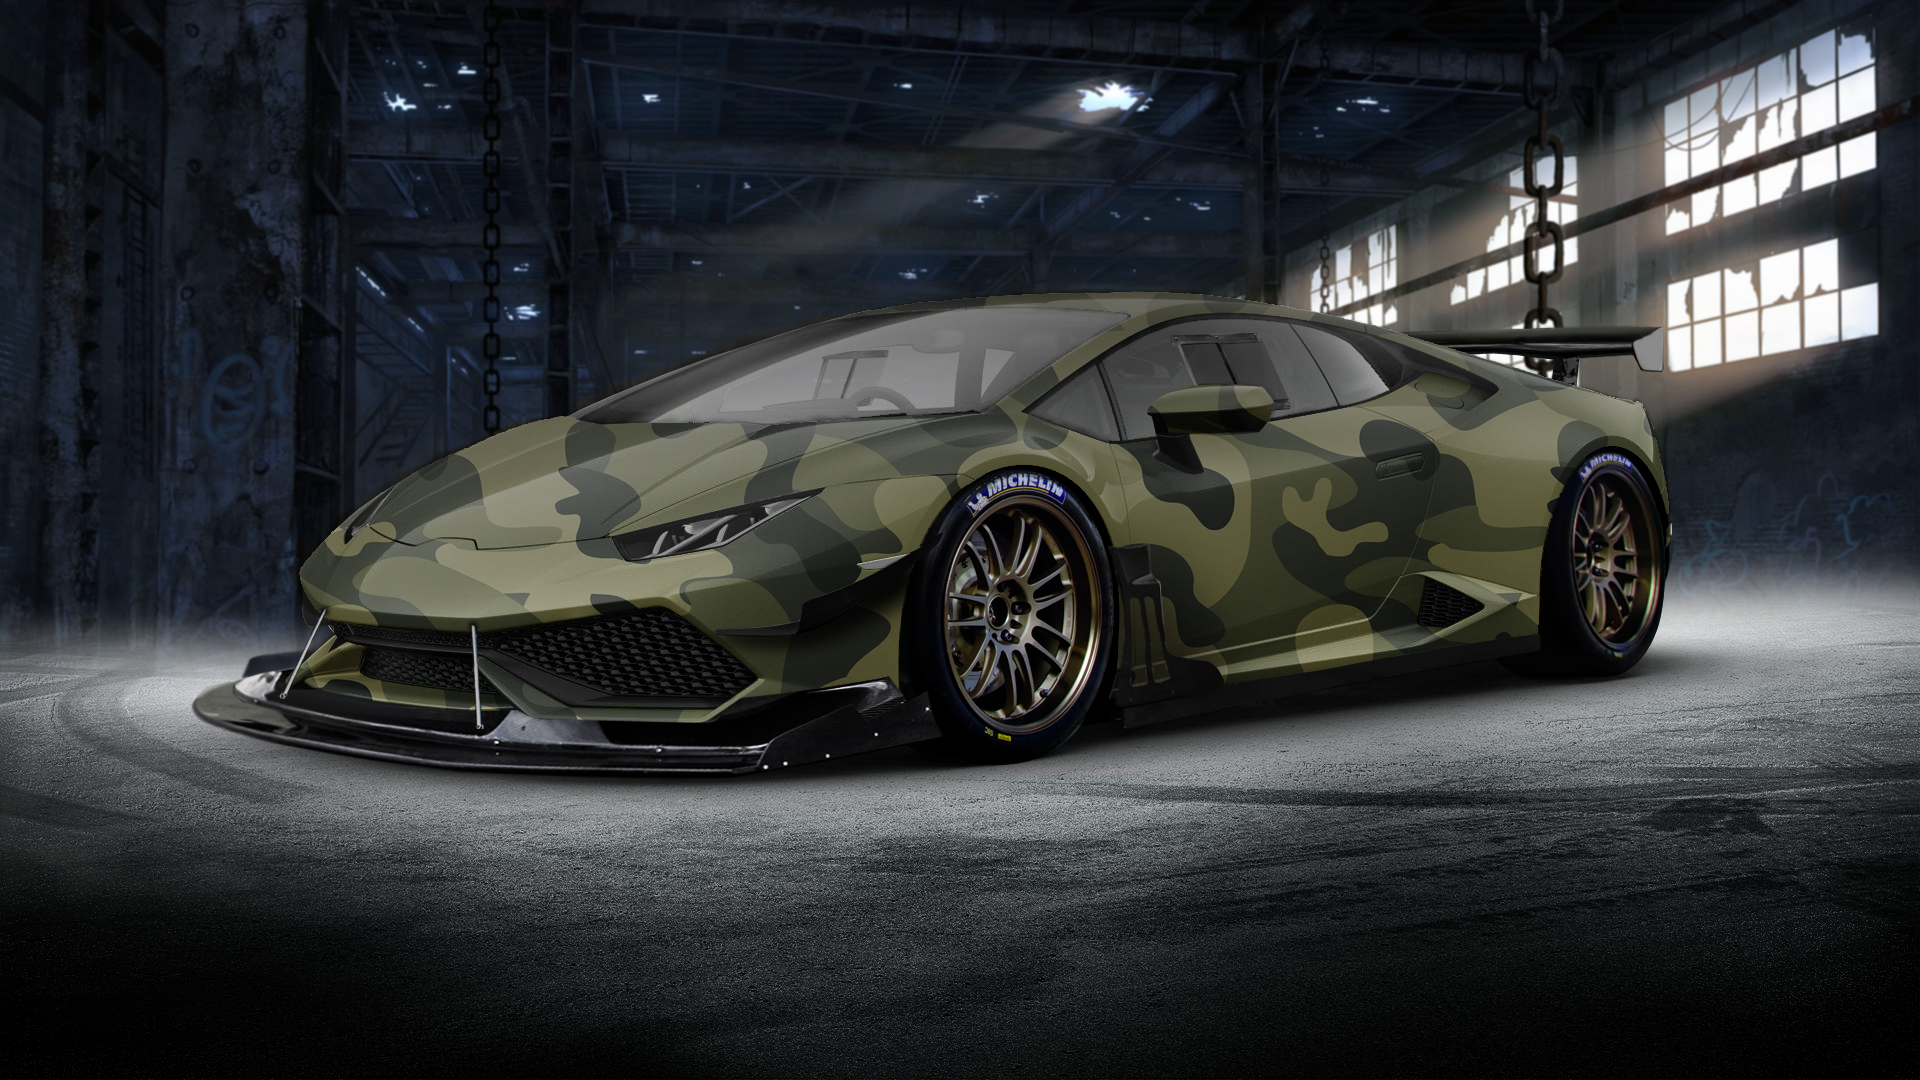 100 Camo Lamborghini Wallpaper Lamborghini Gallardo Wallpapers High Definition